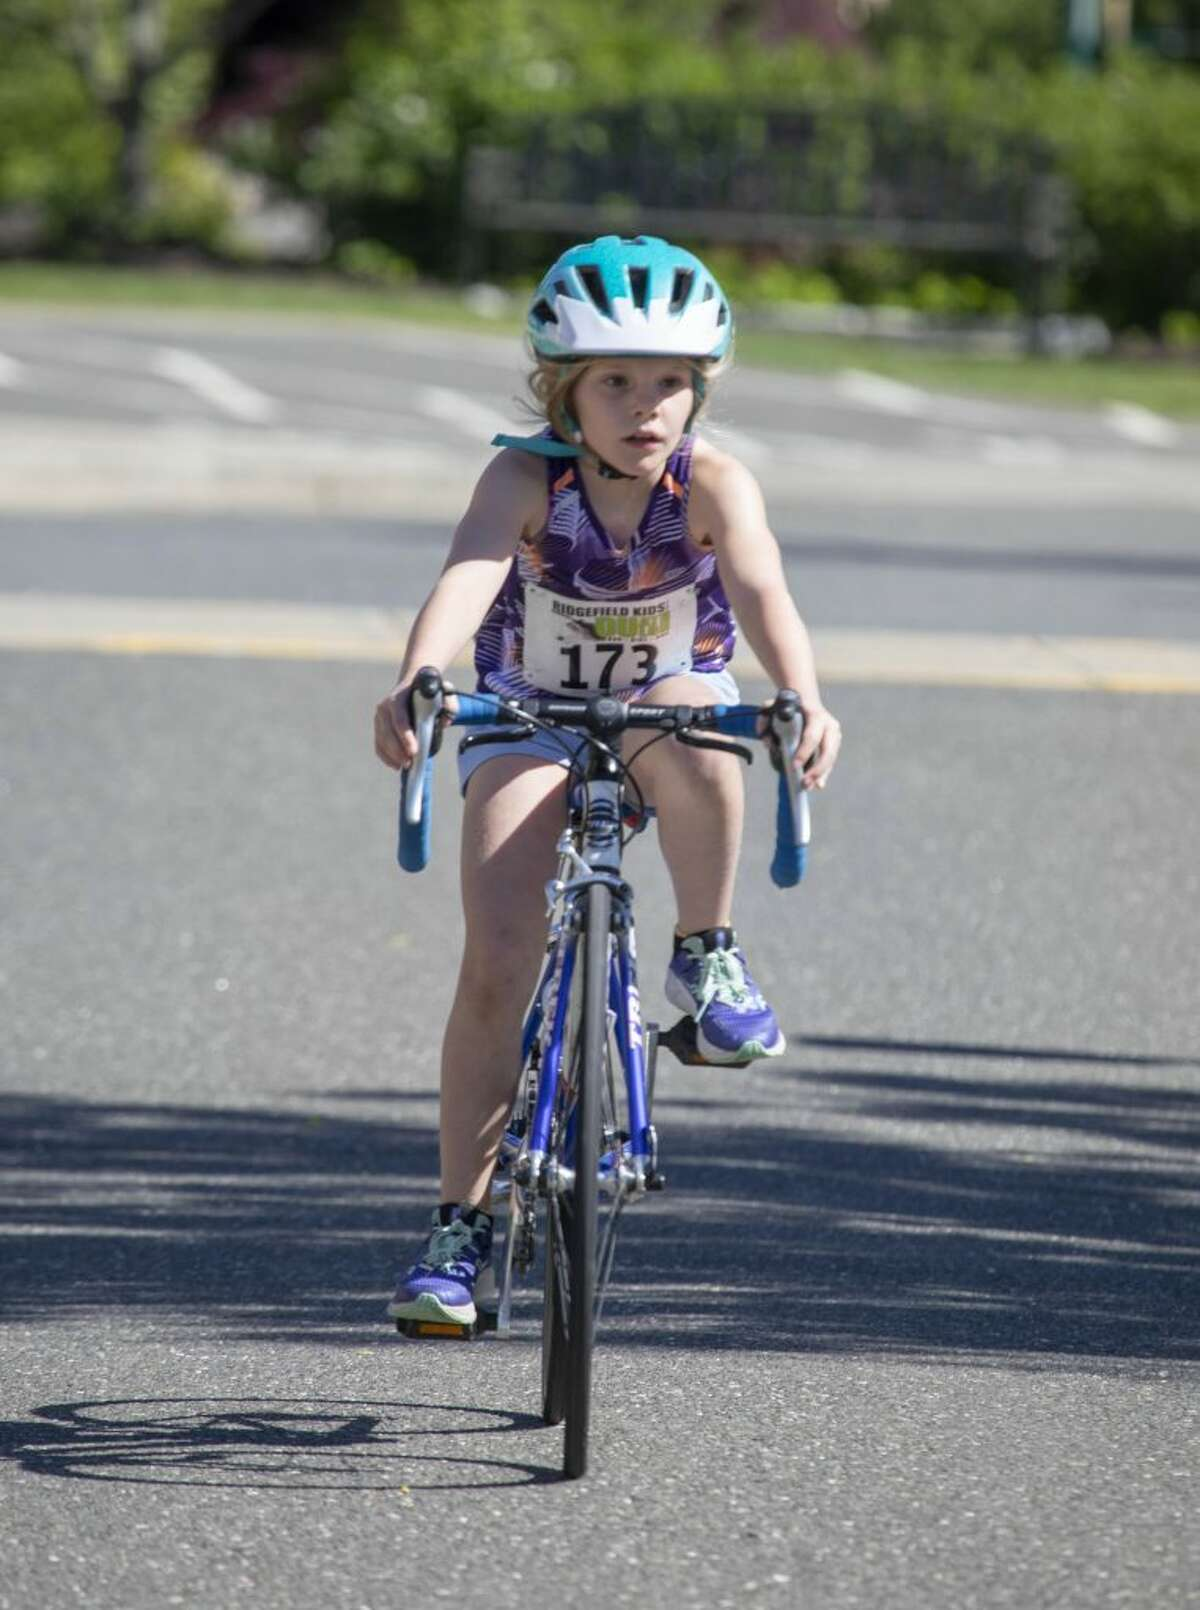 Abigail O'Neil rides her bike during the sixth annual Ridgefield Kids Duathlon at the Ridgefield Parks & Recreation Center on Sunday, June 9. More than 100 athletes between the ages of 4 and 14 raced a run/bike/run format on the closed parks and recreation campus. Blue skies, perfect temperatures and and big smiles were highlights of the morning. The Ridgefield Bicycle Sport Club organizes the race for the youth community every year in June.